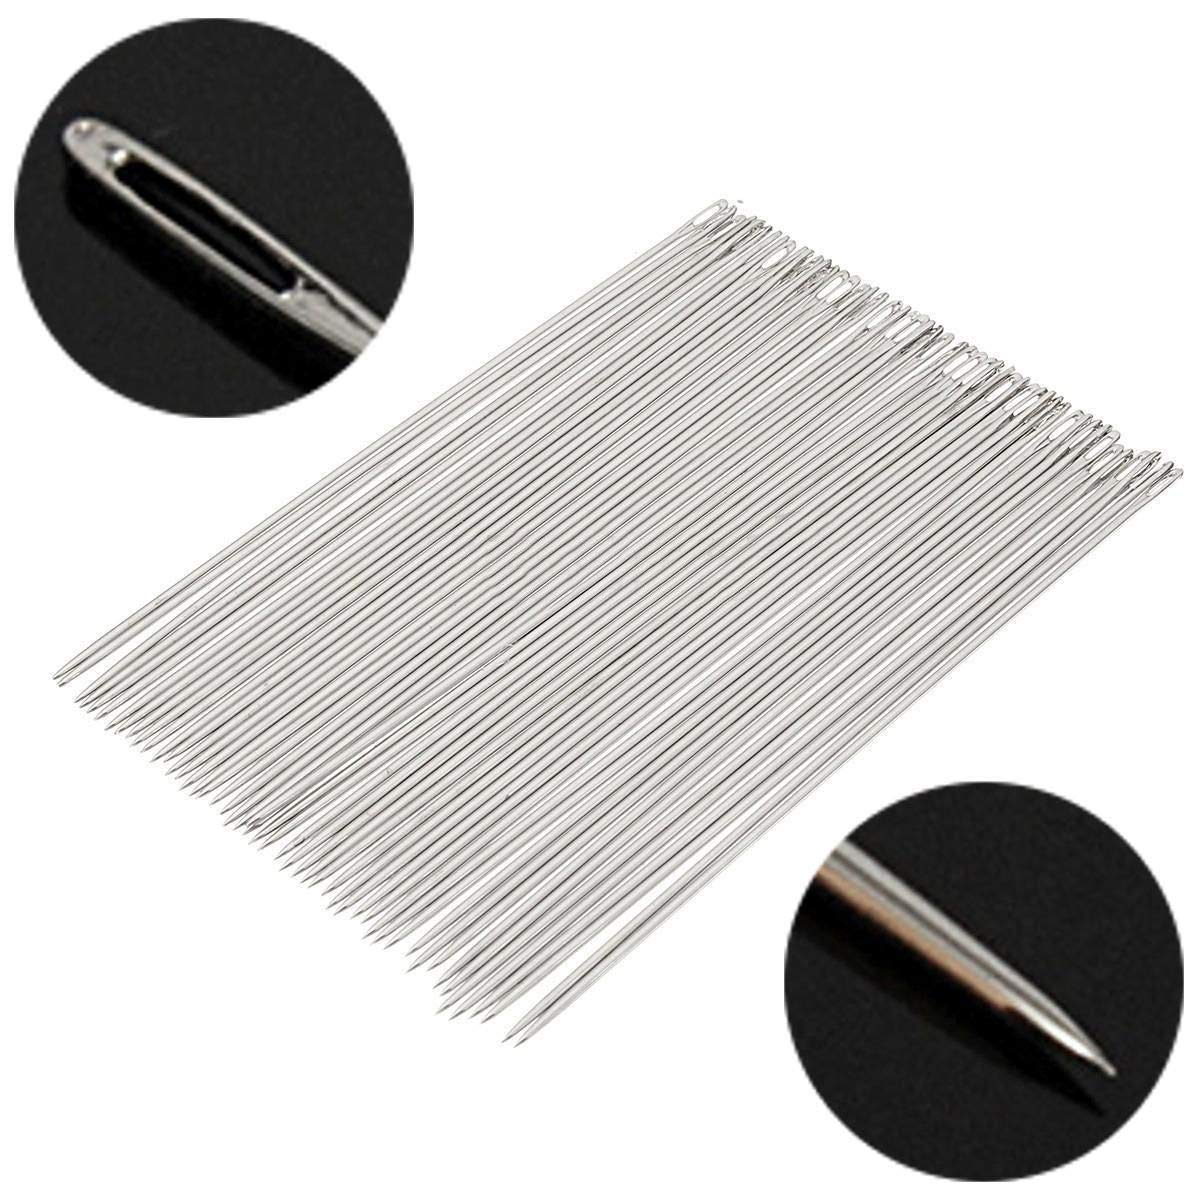 LTKJ 50Pcs Long Sculpting Needles Large Eye Needle for Sewing Crafts 6 Inch